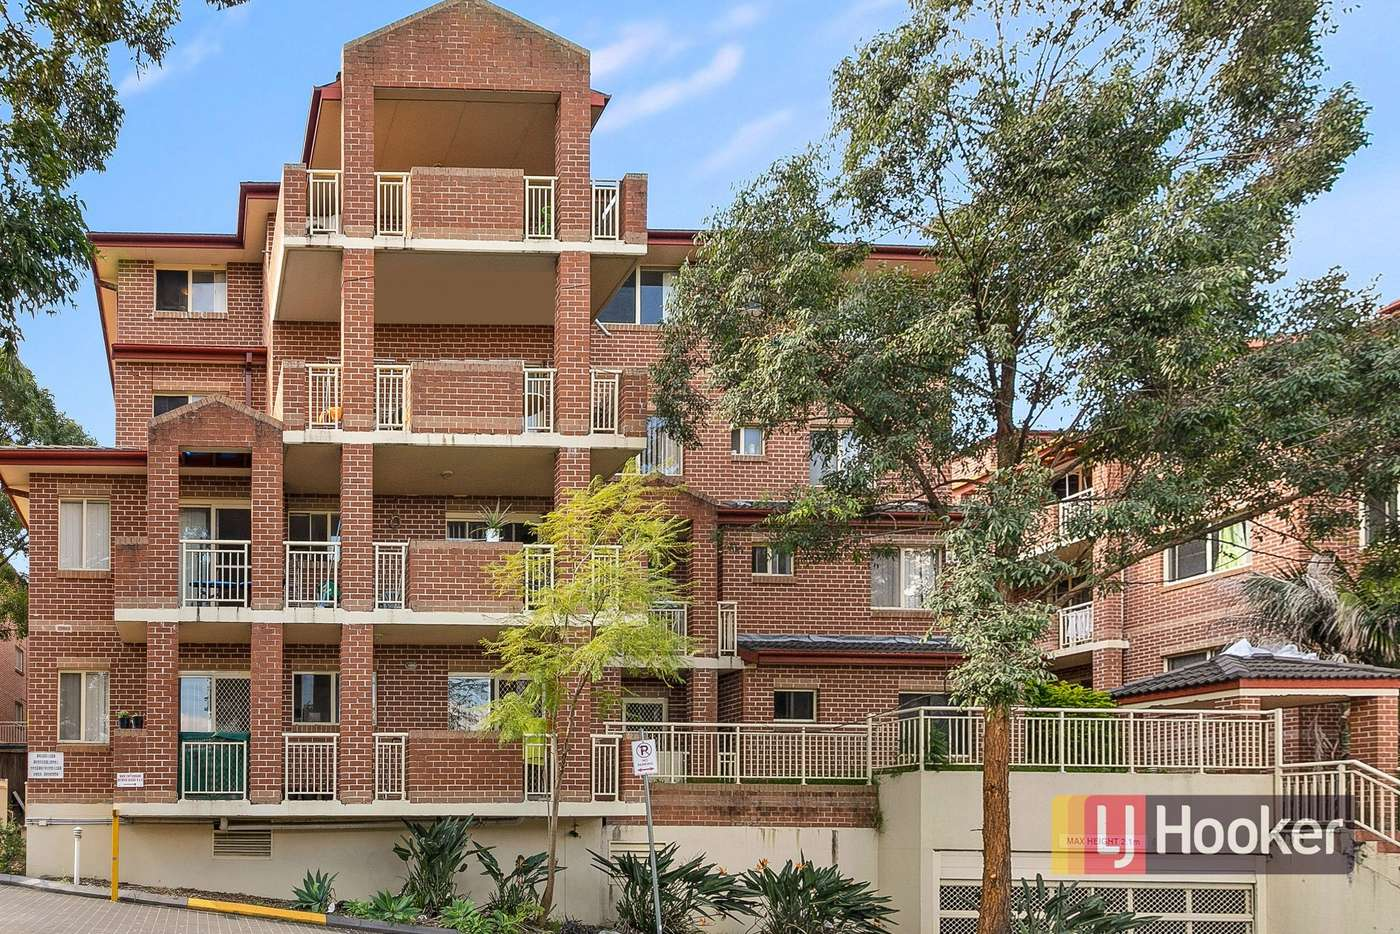 Main view of Homely apartment listing, 4a/88-98 Marsden St, Parramatta NSW 2150